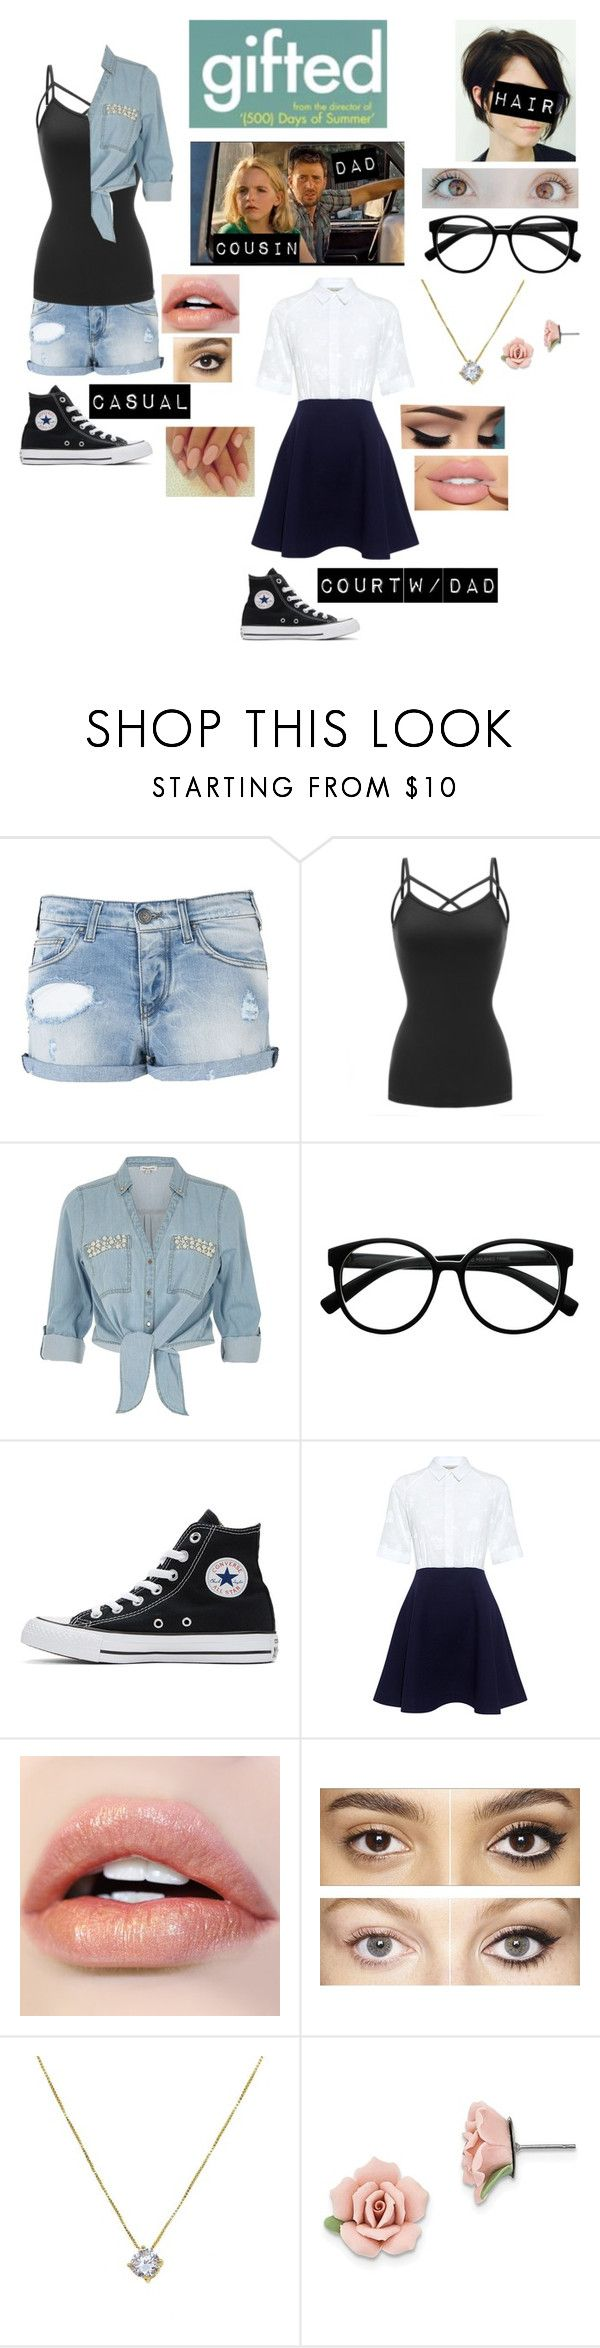 """""""+Me in Gifted+"""" by blissfull-darkness ❤ liked on Polyvore featuring Armani Jeans, River Island, Retrò, Converse, Paul & Joe Sister, Charlotte Tilbury and 1928"""